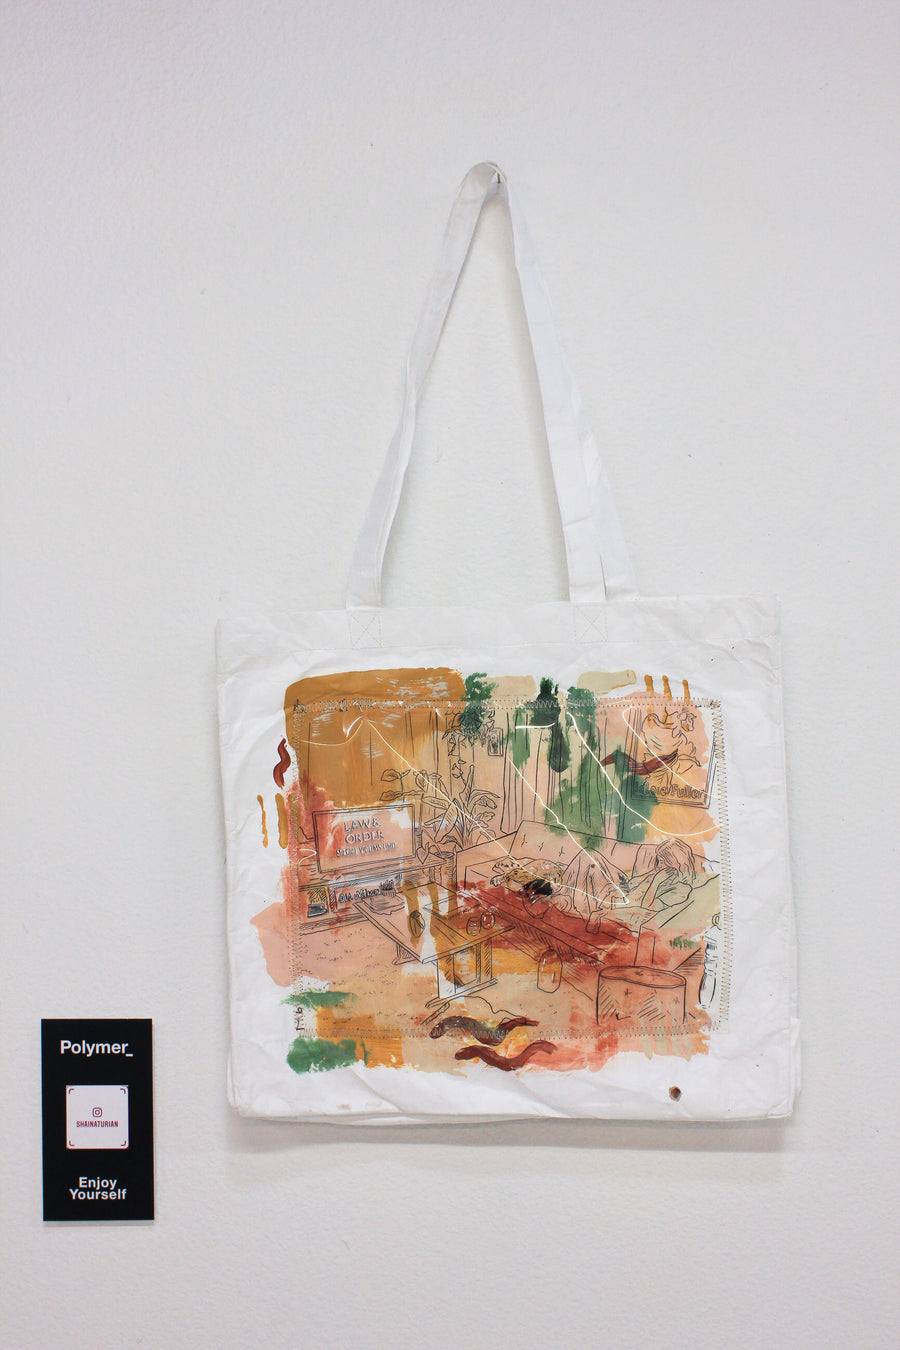 Polymer_ Enjoy Yourself Art Tote by Shaina Turain